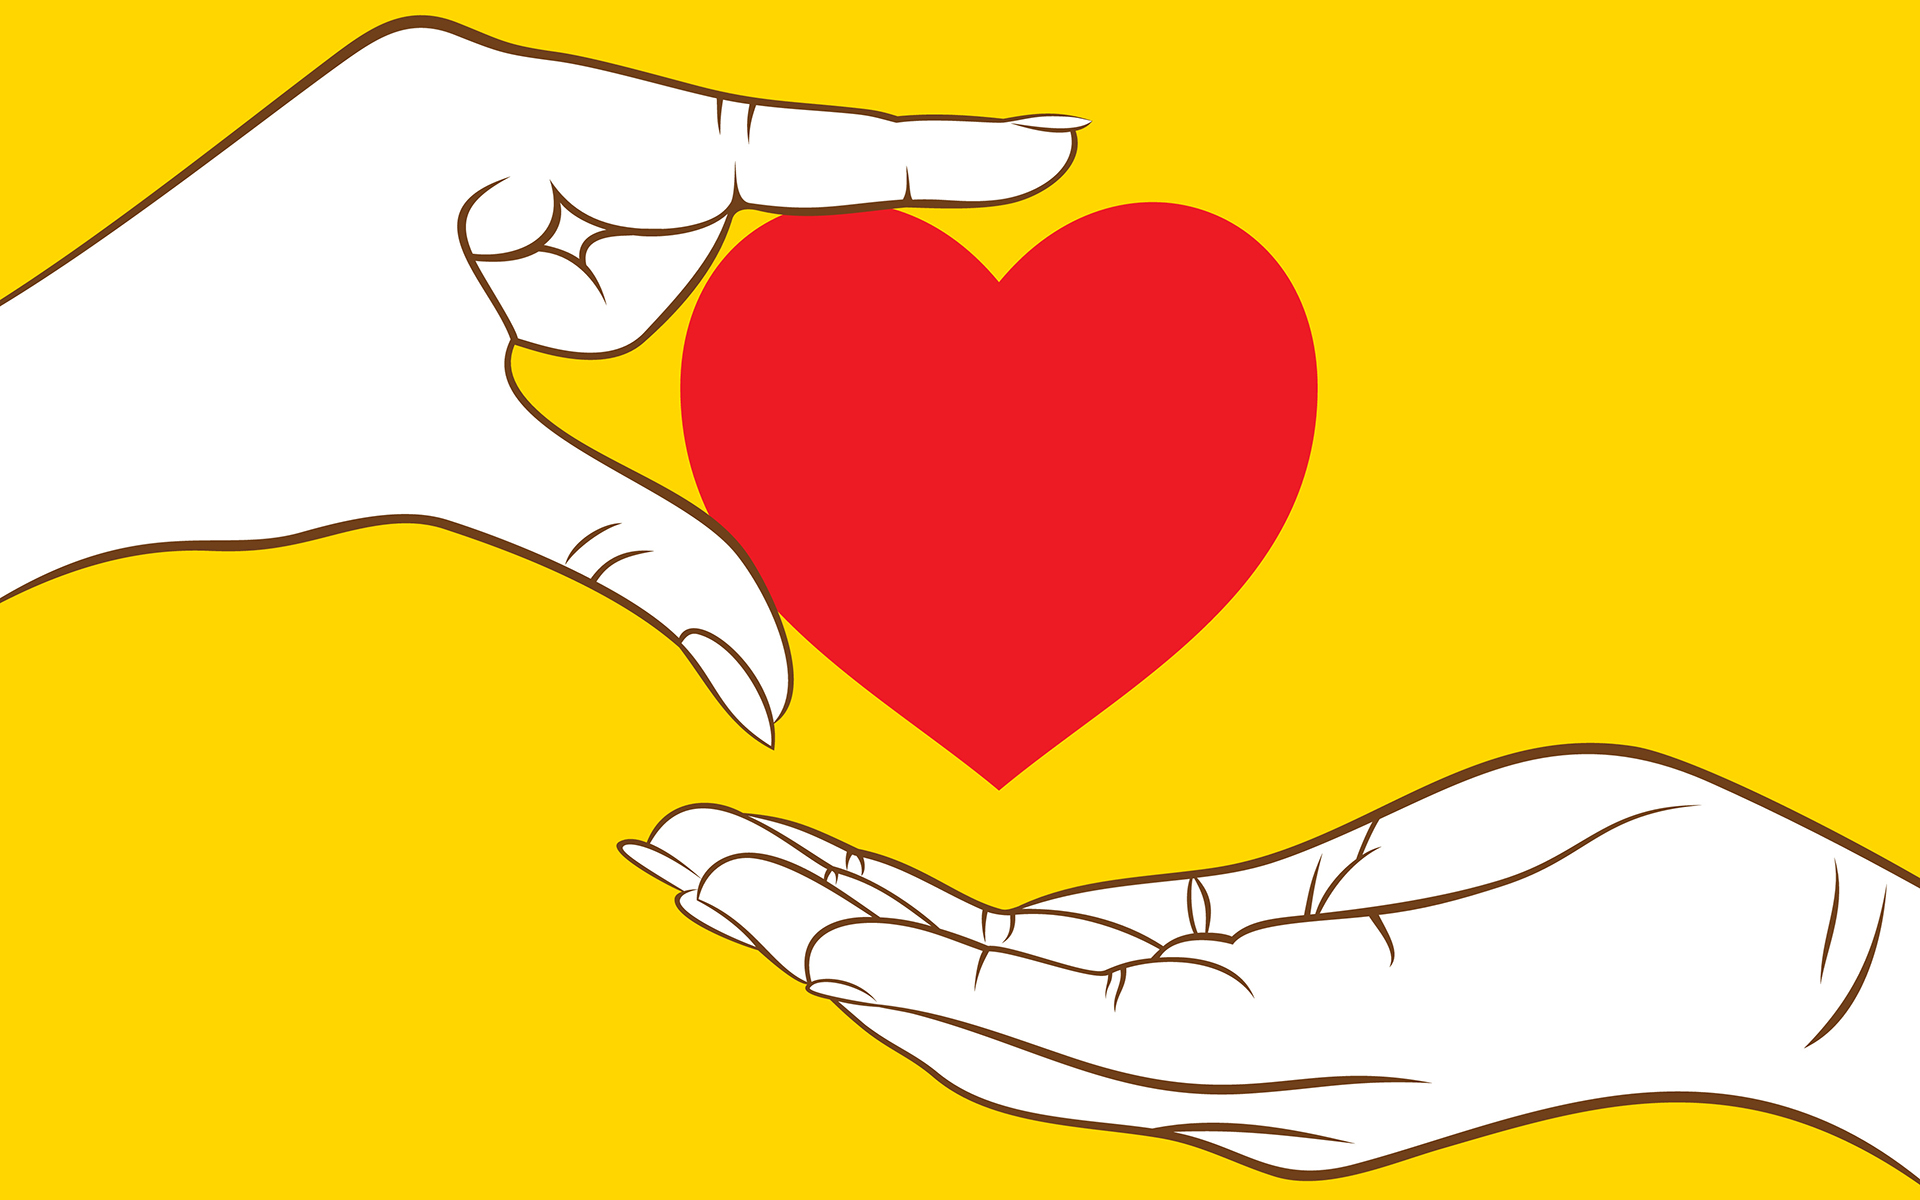 3 Practices to Come Back to Your Heart - Illustration of two hands and a heart